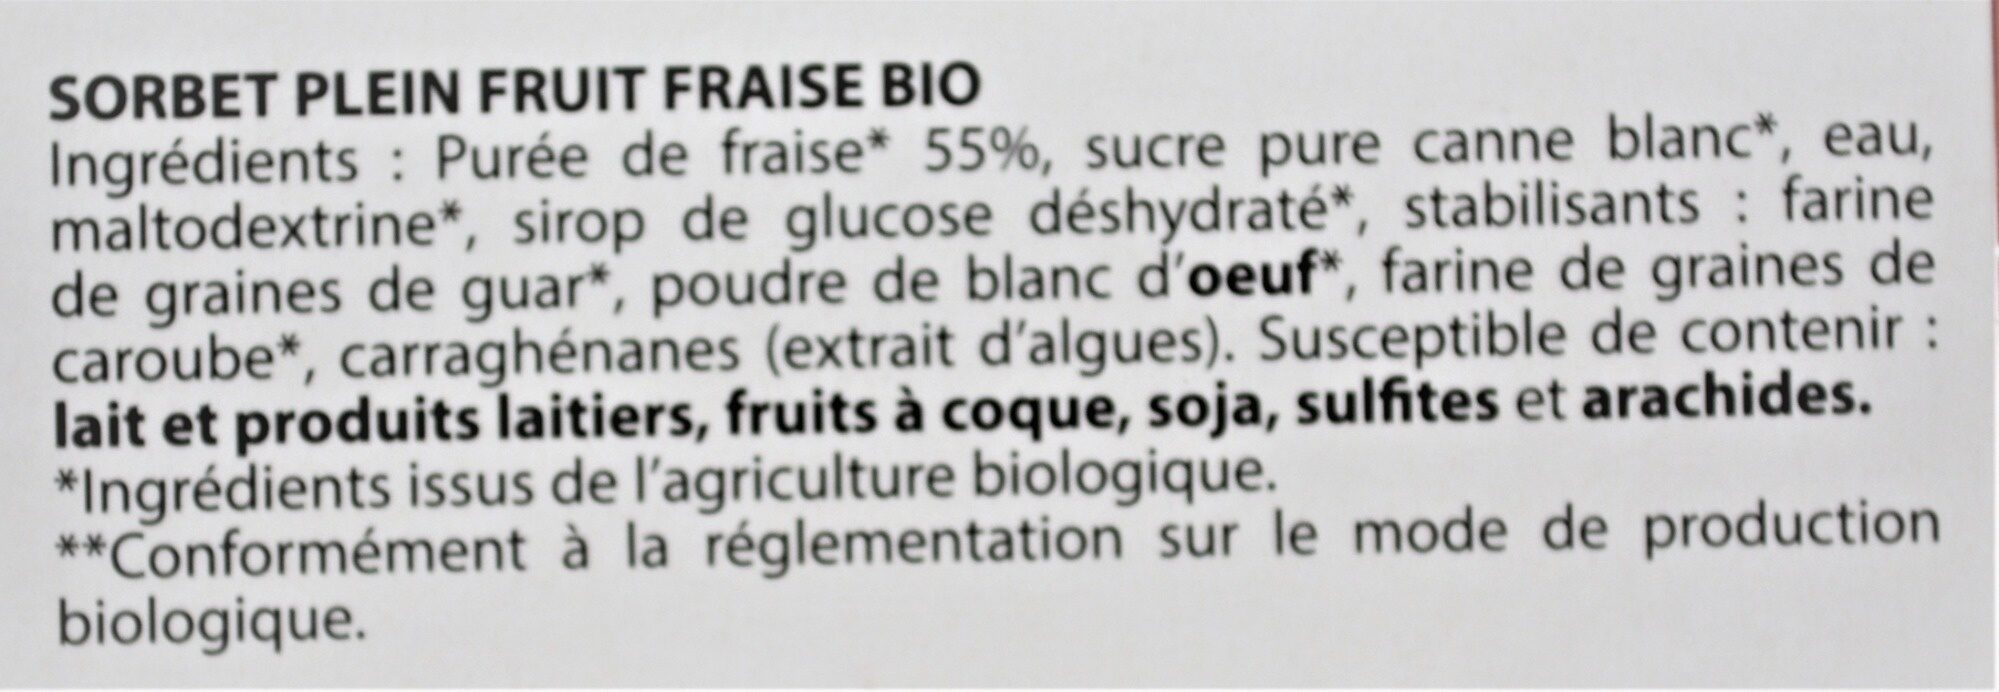 Sorbet plein fruit FRAISE BIO, 55% de fruit - Ingredients - fr